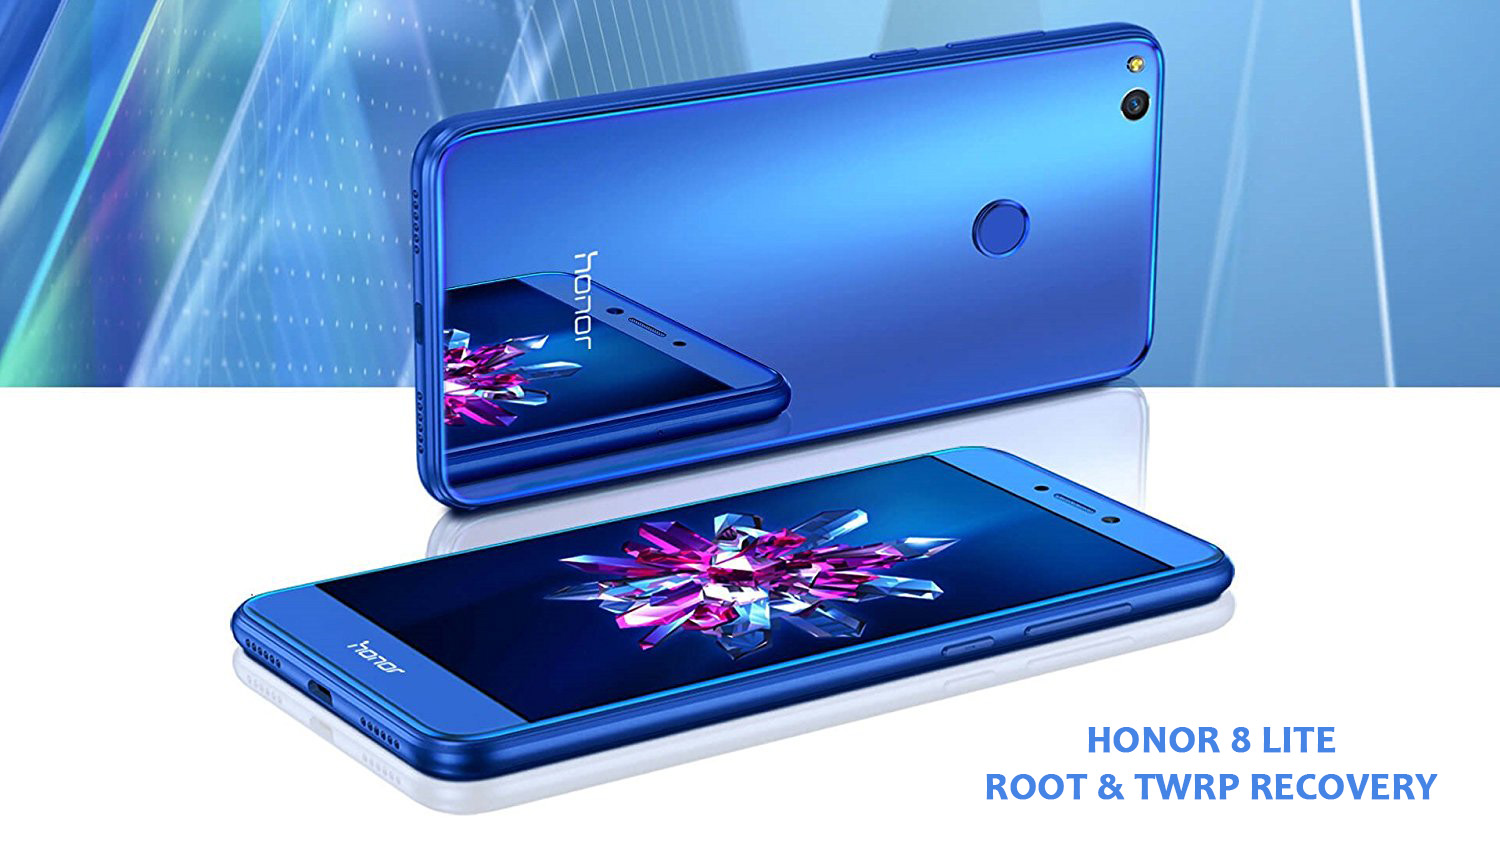 Download] Huawei Honor 8 Lite Root and TWRP recovery